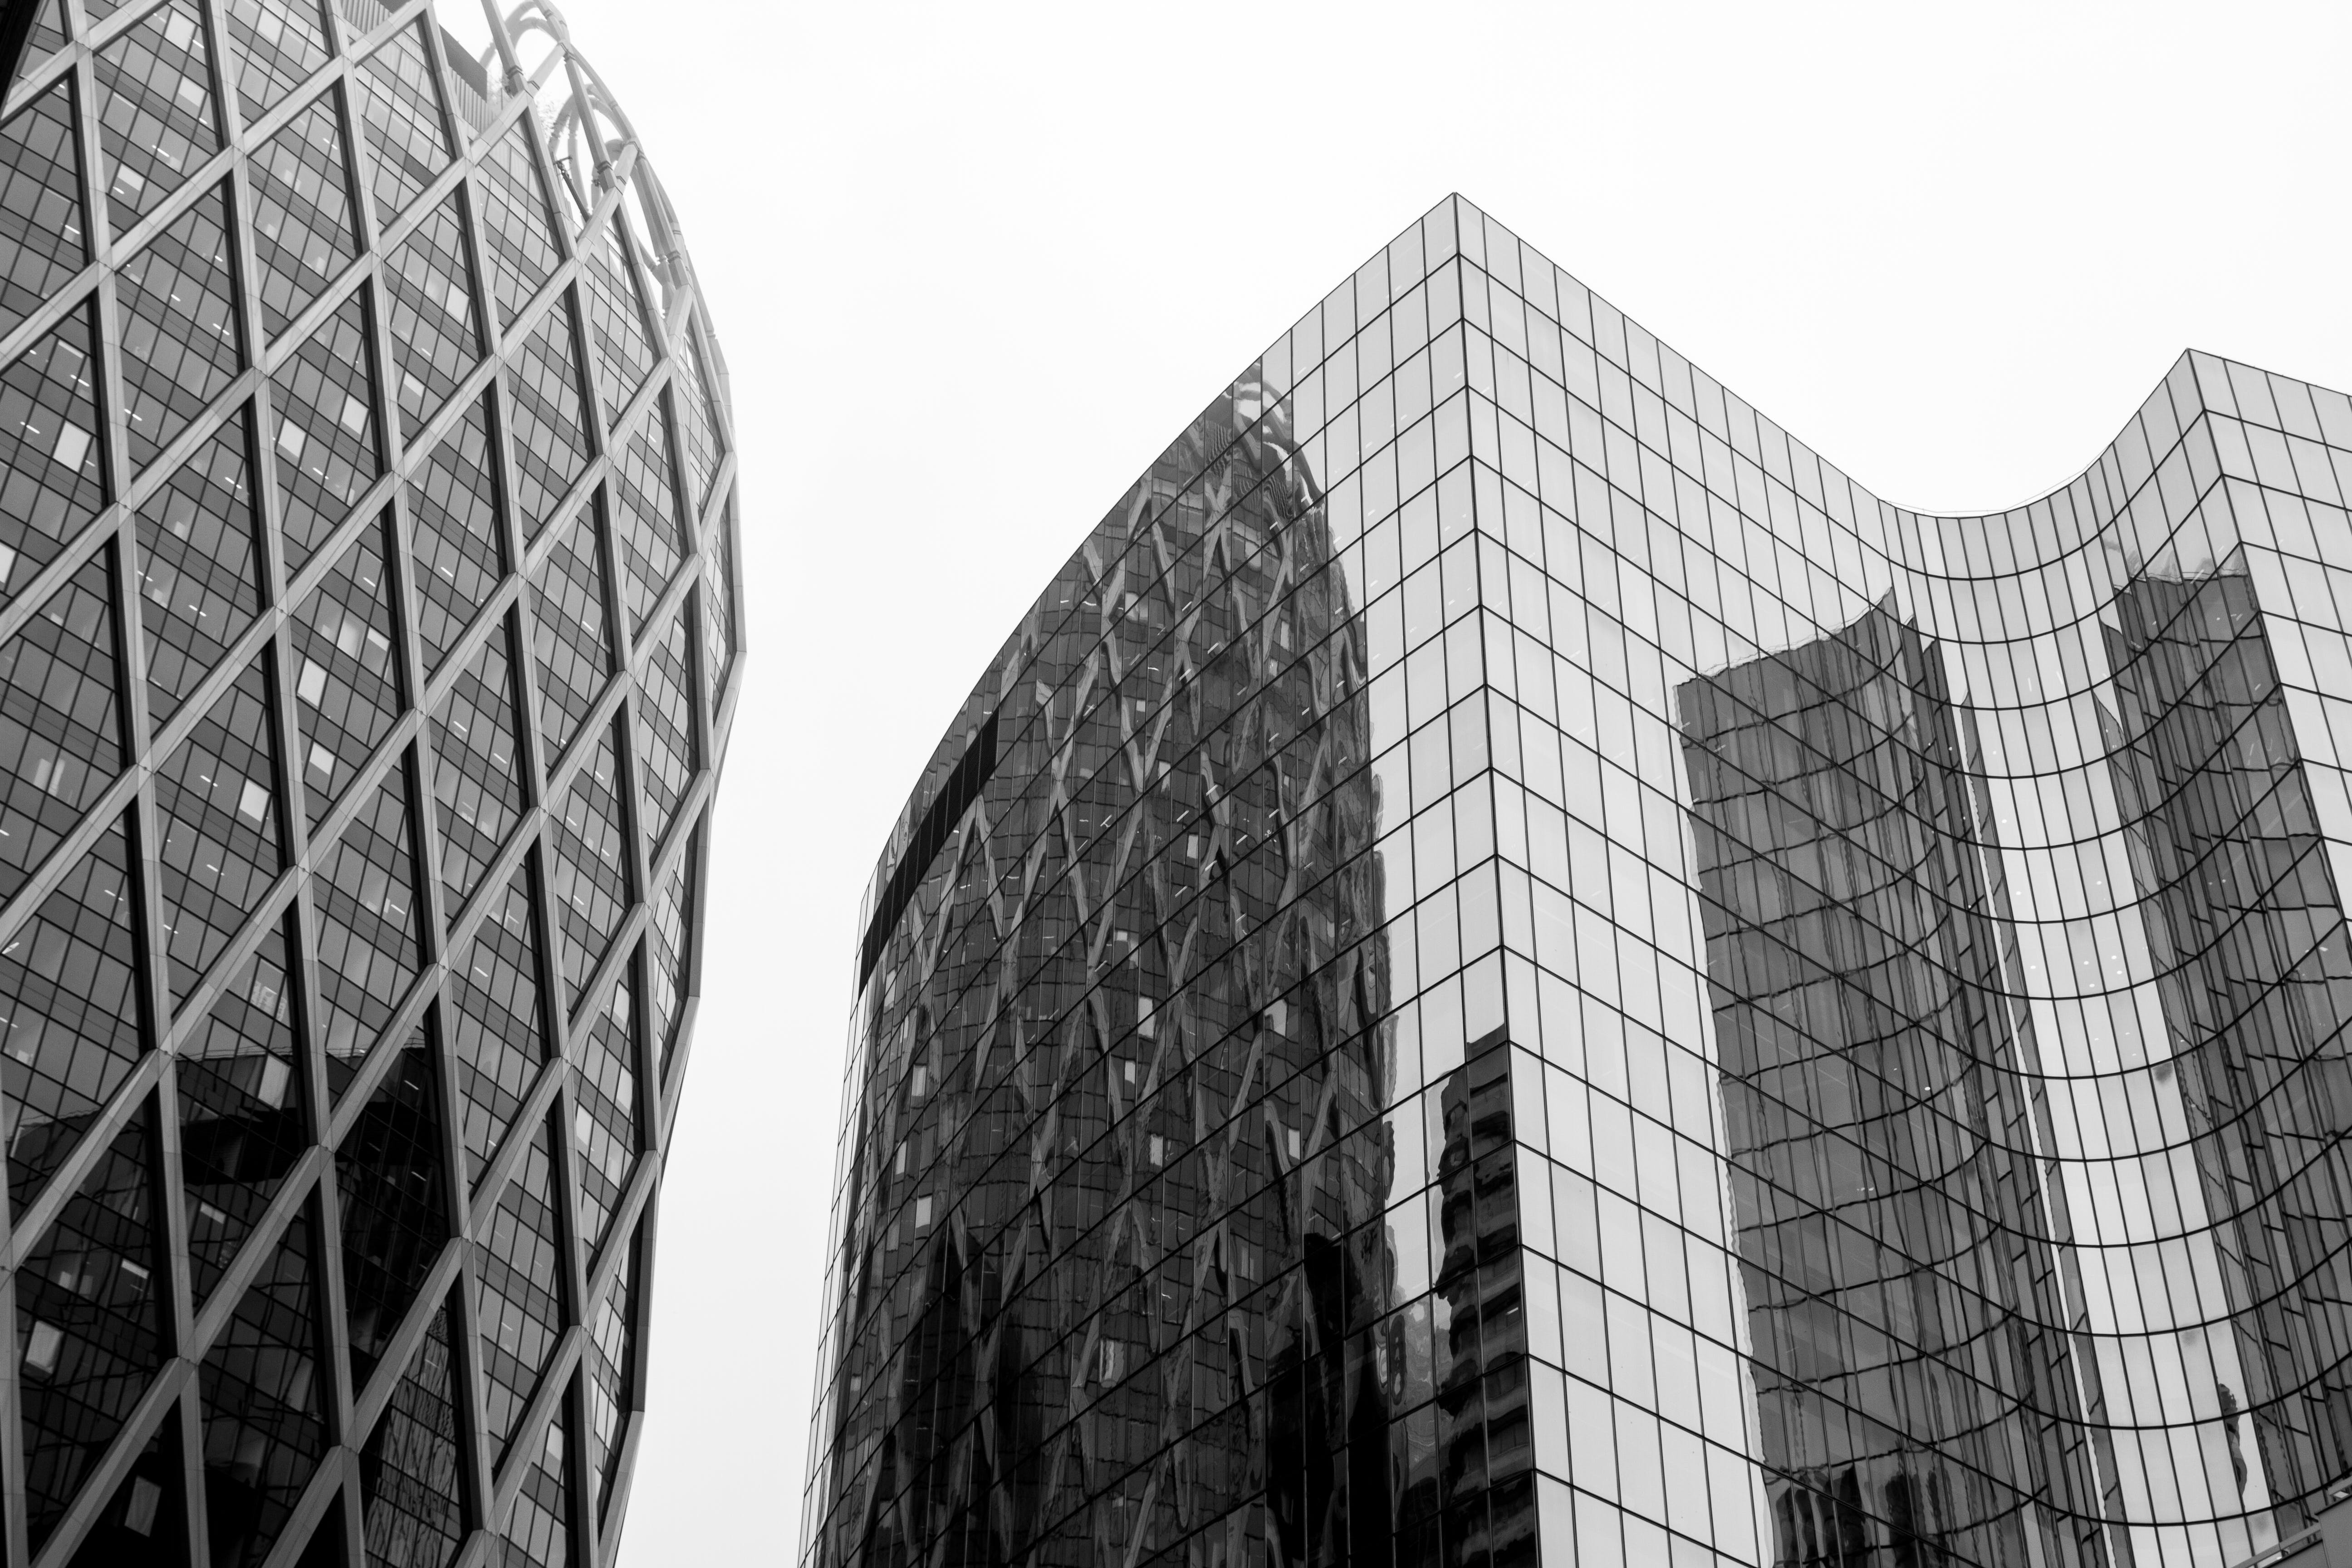 Greyscale Photo Of Glass Window Buildings